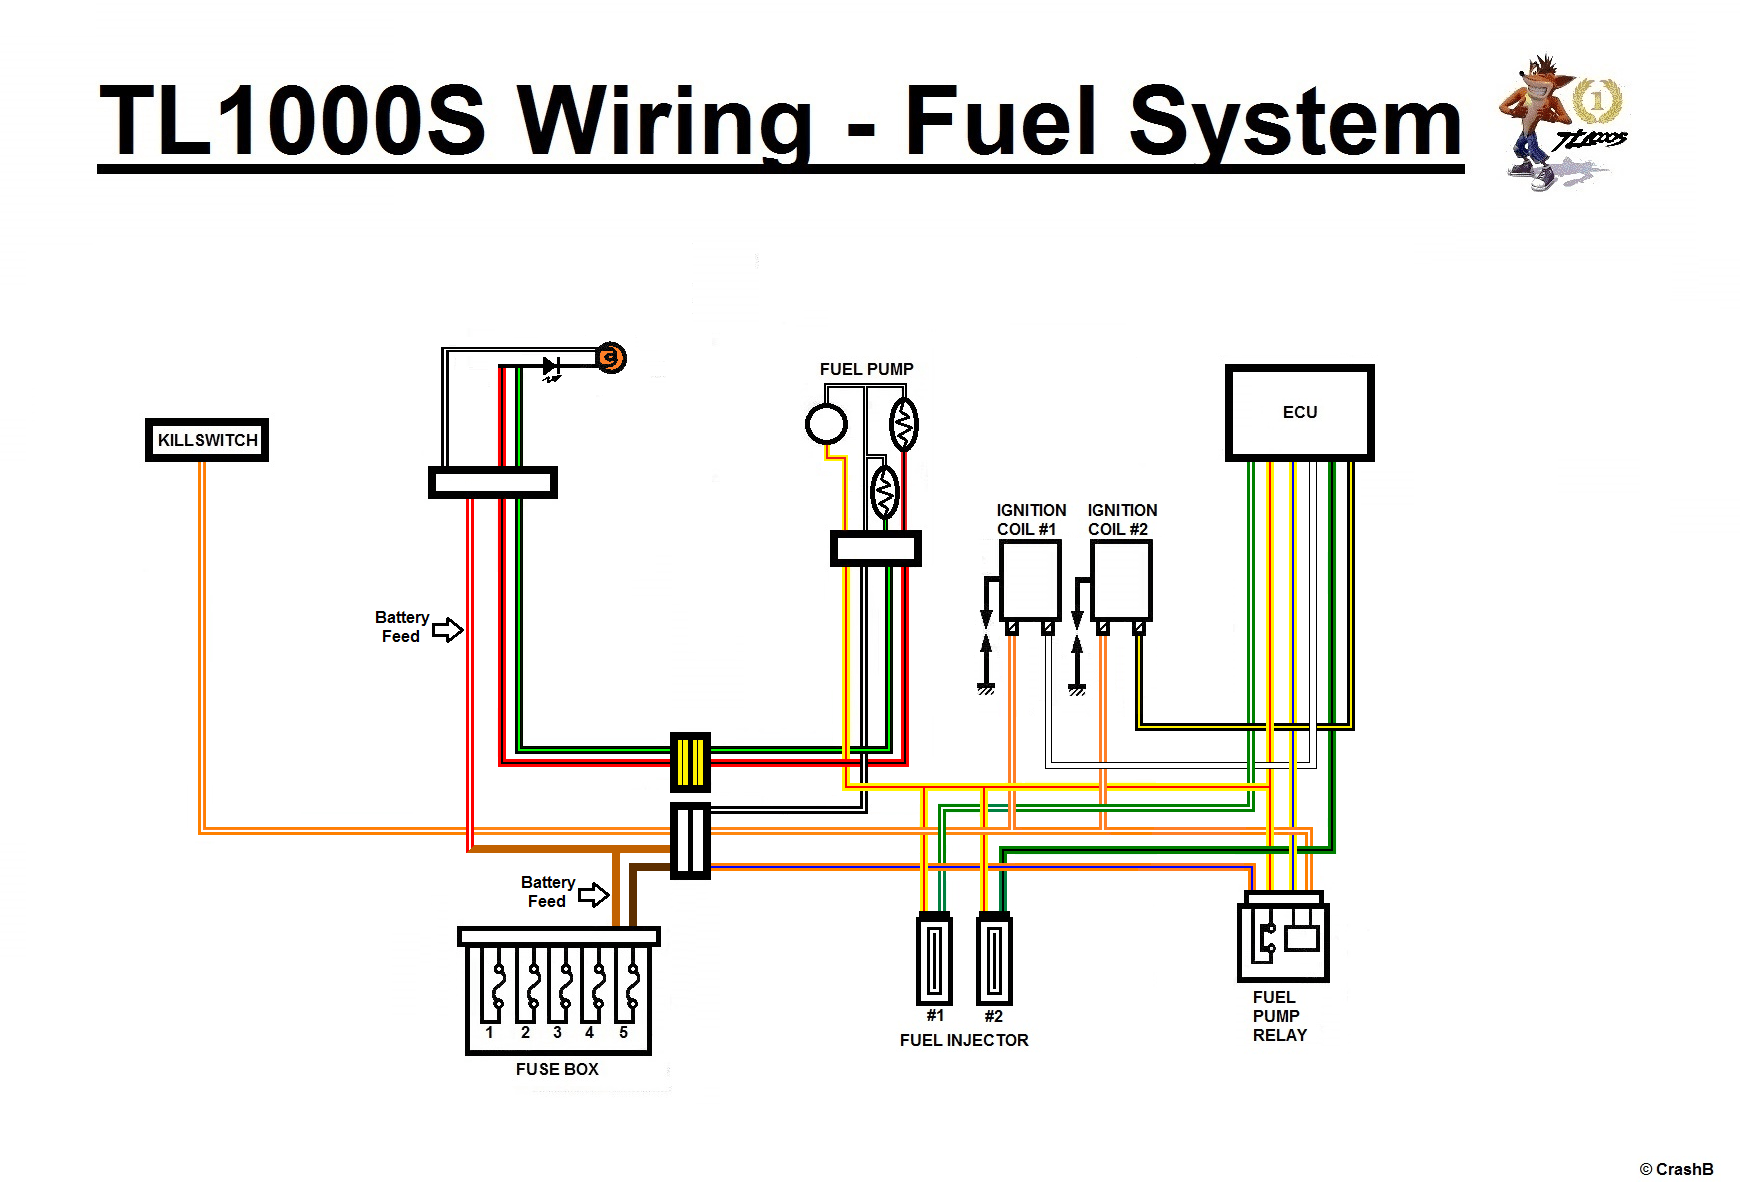 hight resolution of tl1000r wiring diagram wiring diagram today 1999 suzuki tl1000r wiring diagram